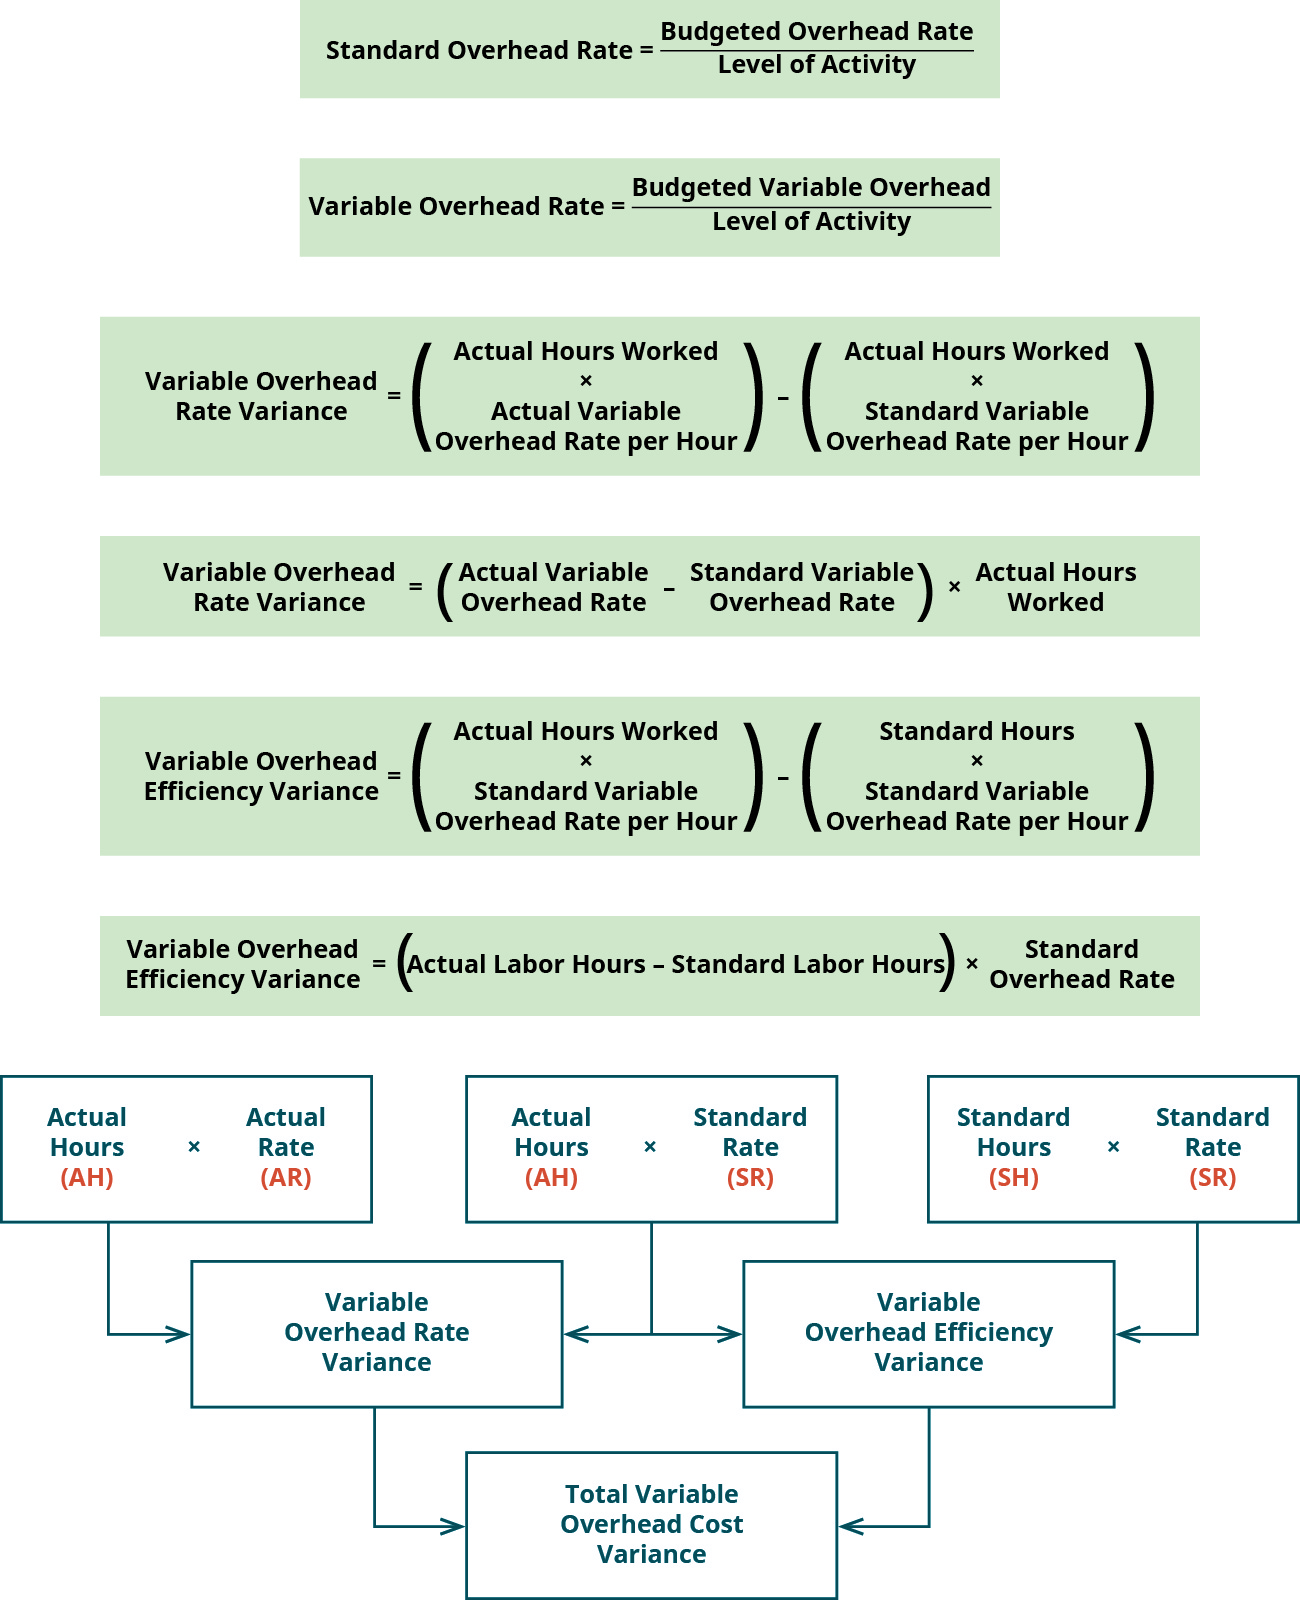 Standard Overhead Rate equals Budgeted Overhead Rate divided by Level of Activity. Variable Overhead Rate equals Budgeted Variable Overhead divided by Level of Activity. Variable Overhead Rate Variance equals (Actual Hours Worked times Actual Variable Overhead Rate per Hour) minus (Actual Hours Worked times Standard Variable Overhead Rate per Hour). Variable Overhead Rate Variance equals (Actual Variable Overhead Rate minus Standard Variable Overhead Rate) times Actual Hours Worked. Variable Overhead Efficiency Variance equals Actual Hours Worked times Standard Variable Overhead Rate per Hour) minus (Standard Hours times Standard Variable Overhead rate per Hour). Variable Overhead Efficiency Variance equals Actual Labor Hours minus Standard Labor Hour) times Standard Overhead Rate. There are three top row boxes. Two, Actual Hours (AH) times Actual Rate (AR) and Actual Hours (AH) times Standard Rate (SR) combine to point to a Second row box: Variable Overhead Rate Variance. Two top row boxes: Actual Hours (AH) times Standard Rate (SR) and Standard Hours (SH) times Standard Rate (SR) combine to point to Second row box: Variable Overhead Efficiency Variance. Notice the middle top row box is used for both of the variances. Second row boxes: Variable Overhead Rate Variance and Variable Overhead Efficiency Variance combine to point to bottom row box: Total Variable Overhead Cost Variance